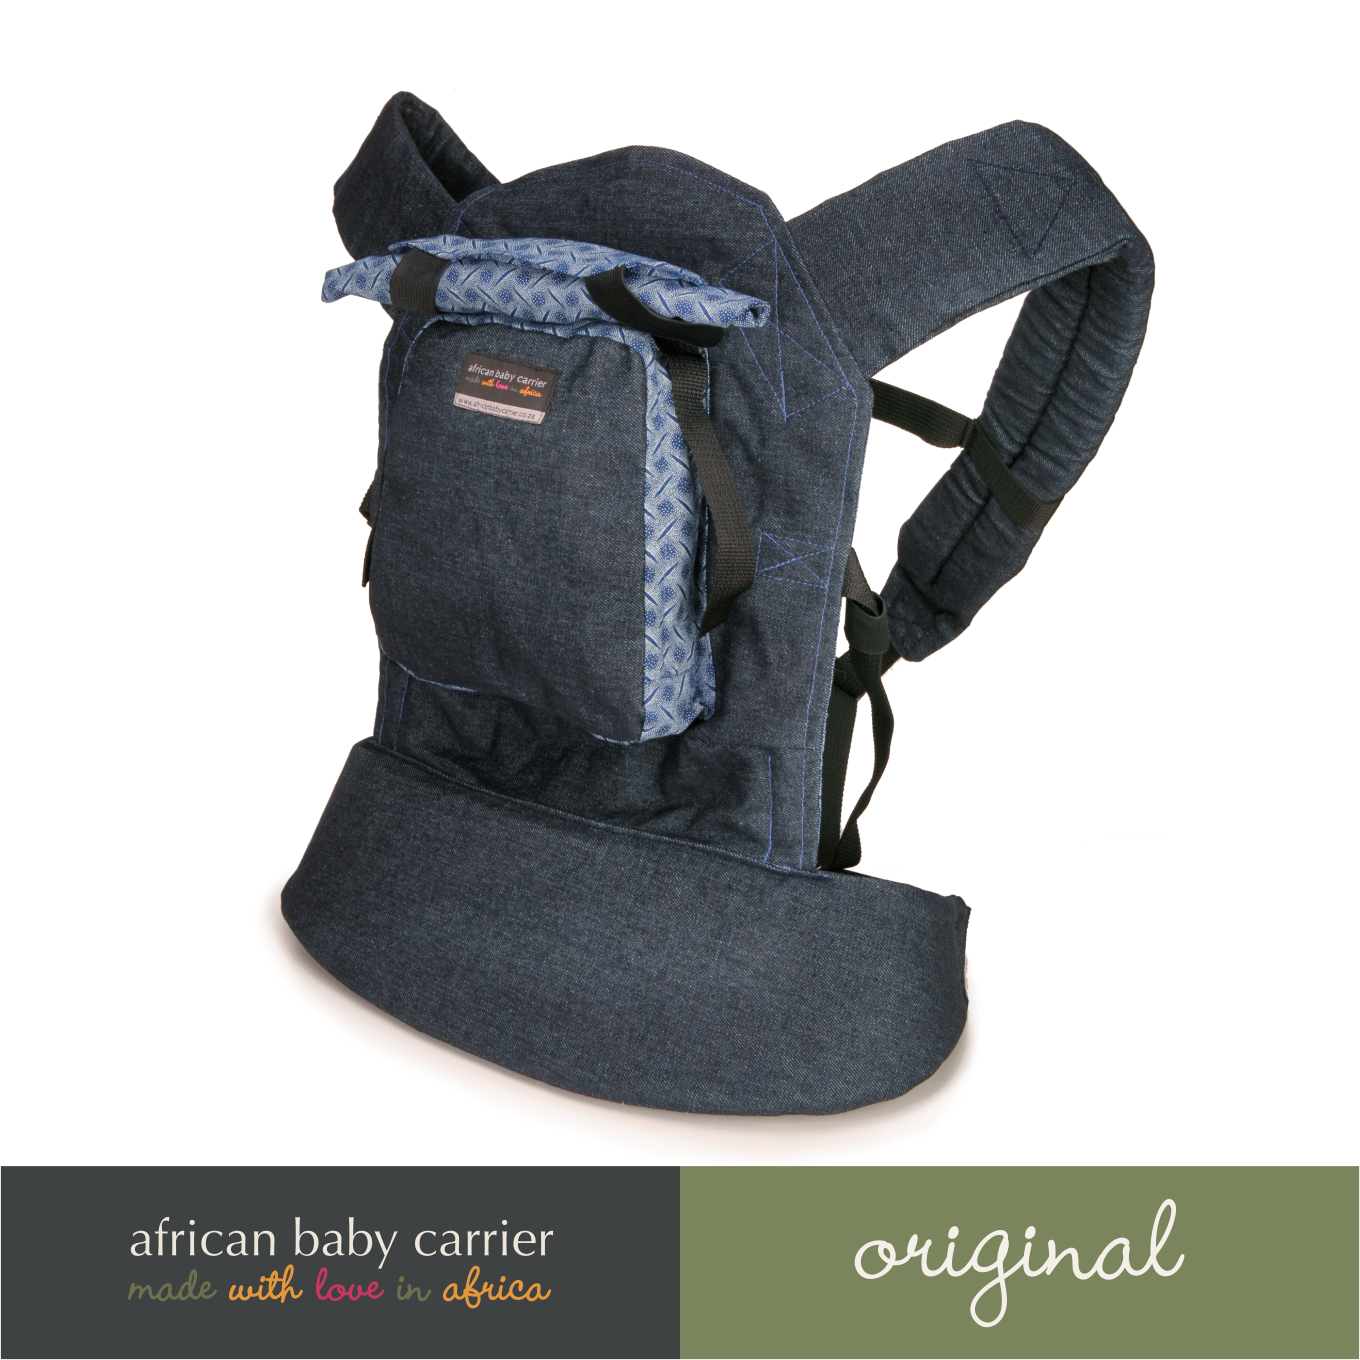 African Baby Carrier - Original - Our Precious Moments